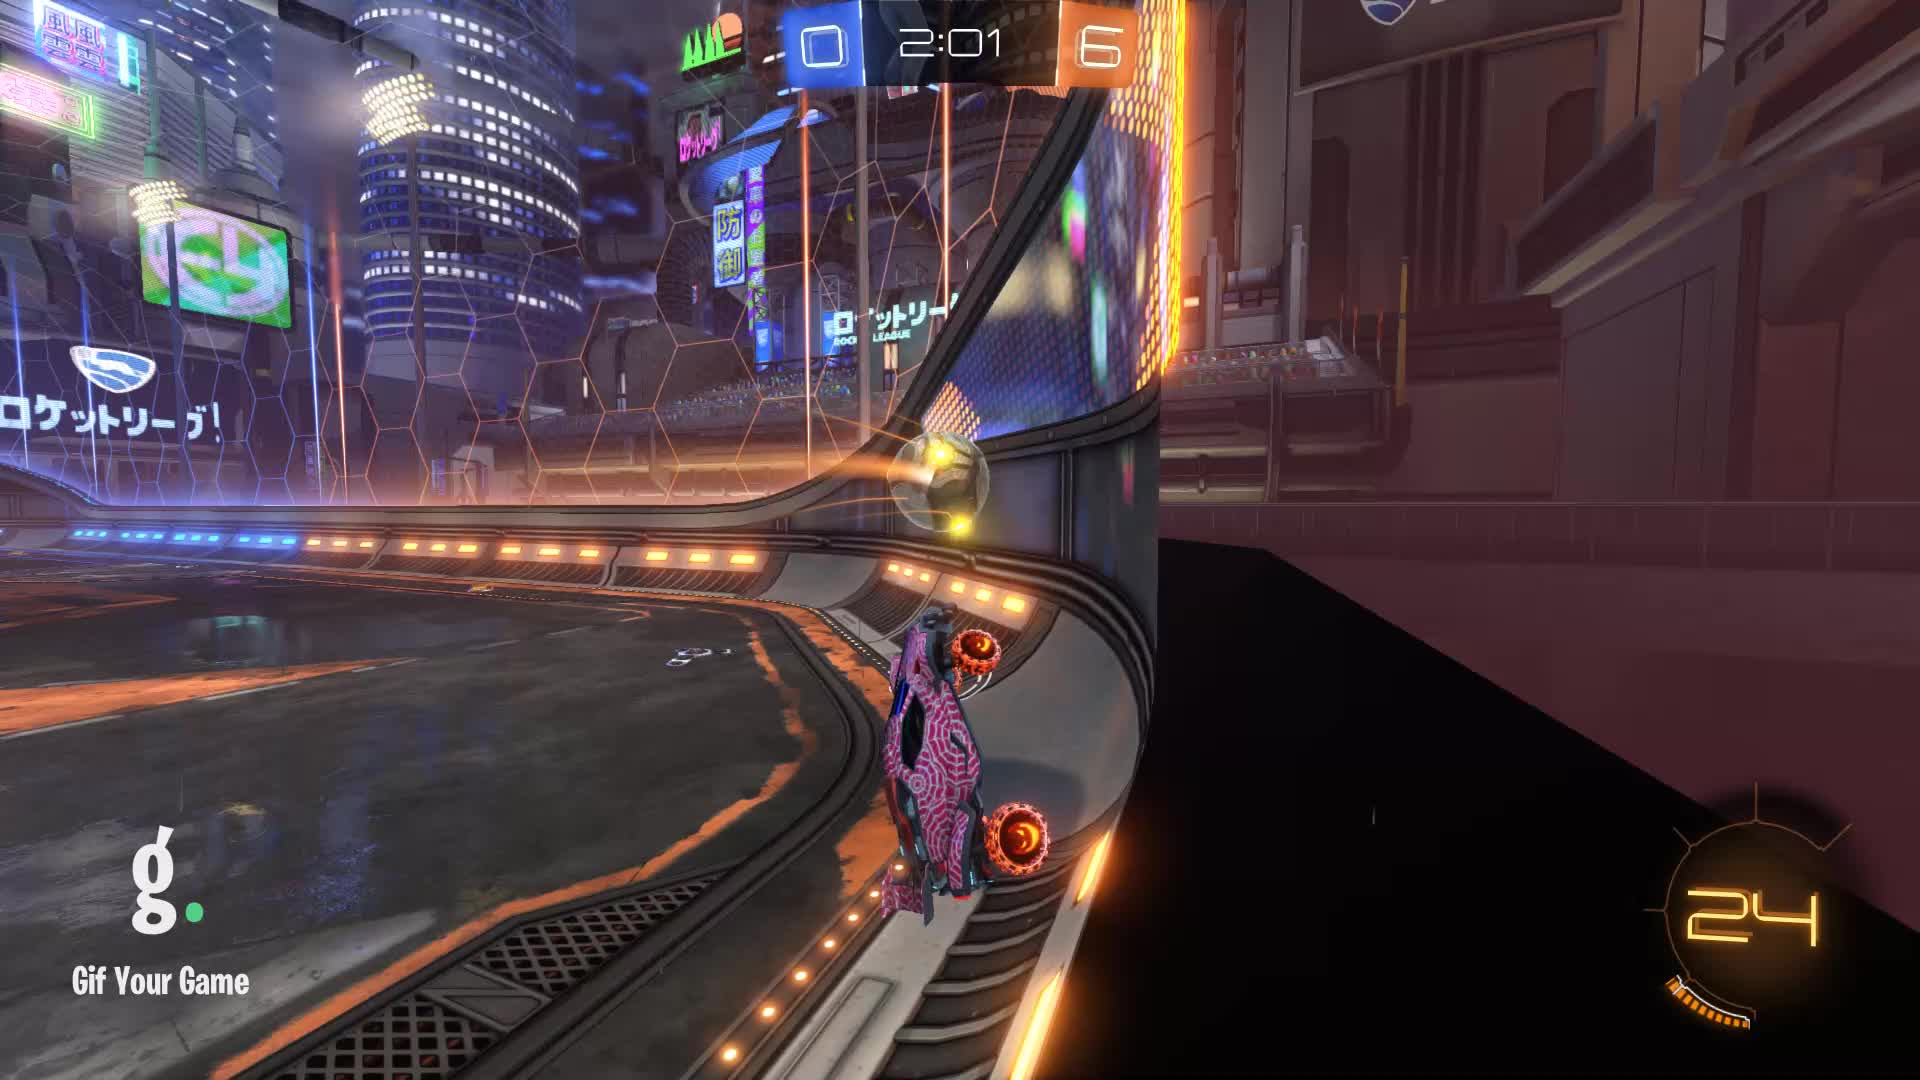 Assist, Gif Your Game, GifYourGame, ItWas...Justified, Rocket League, RocketLeague, Assist 5: ItWas...Justified GIFs